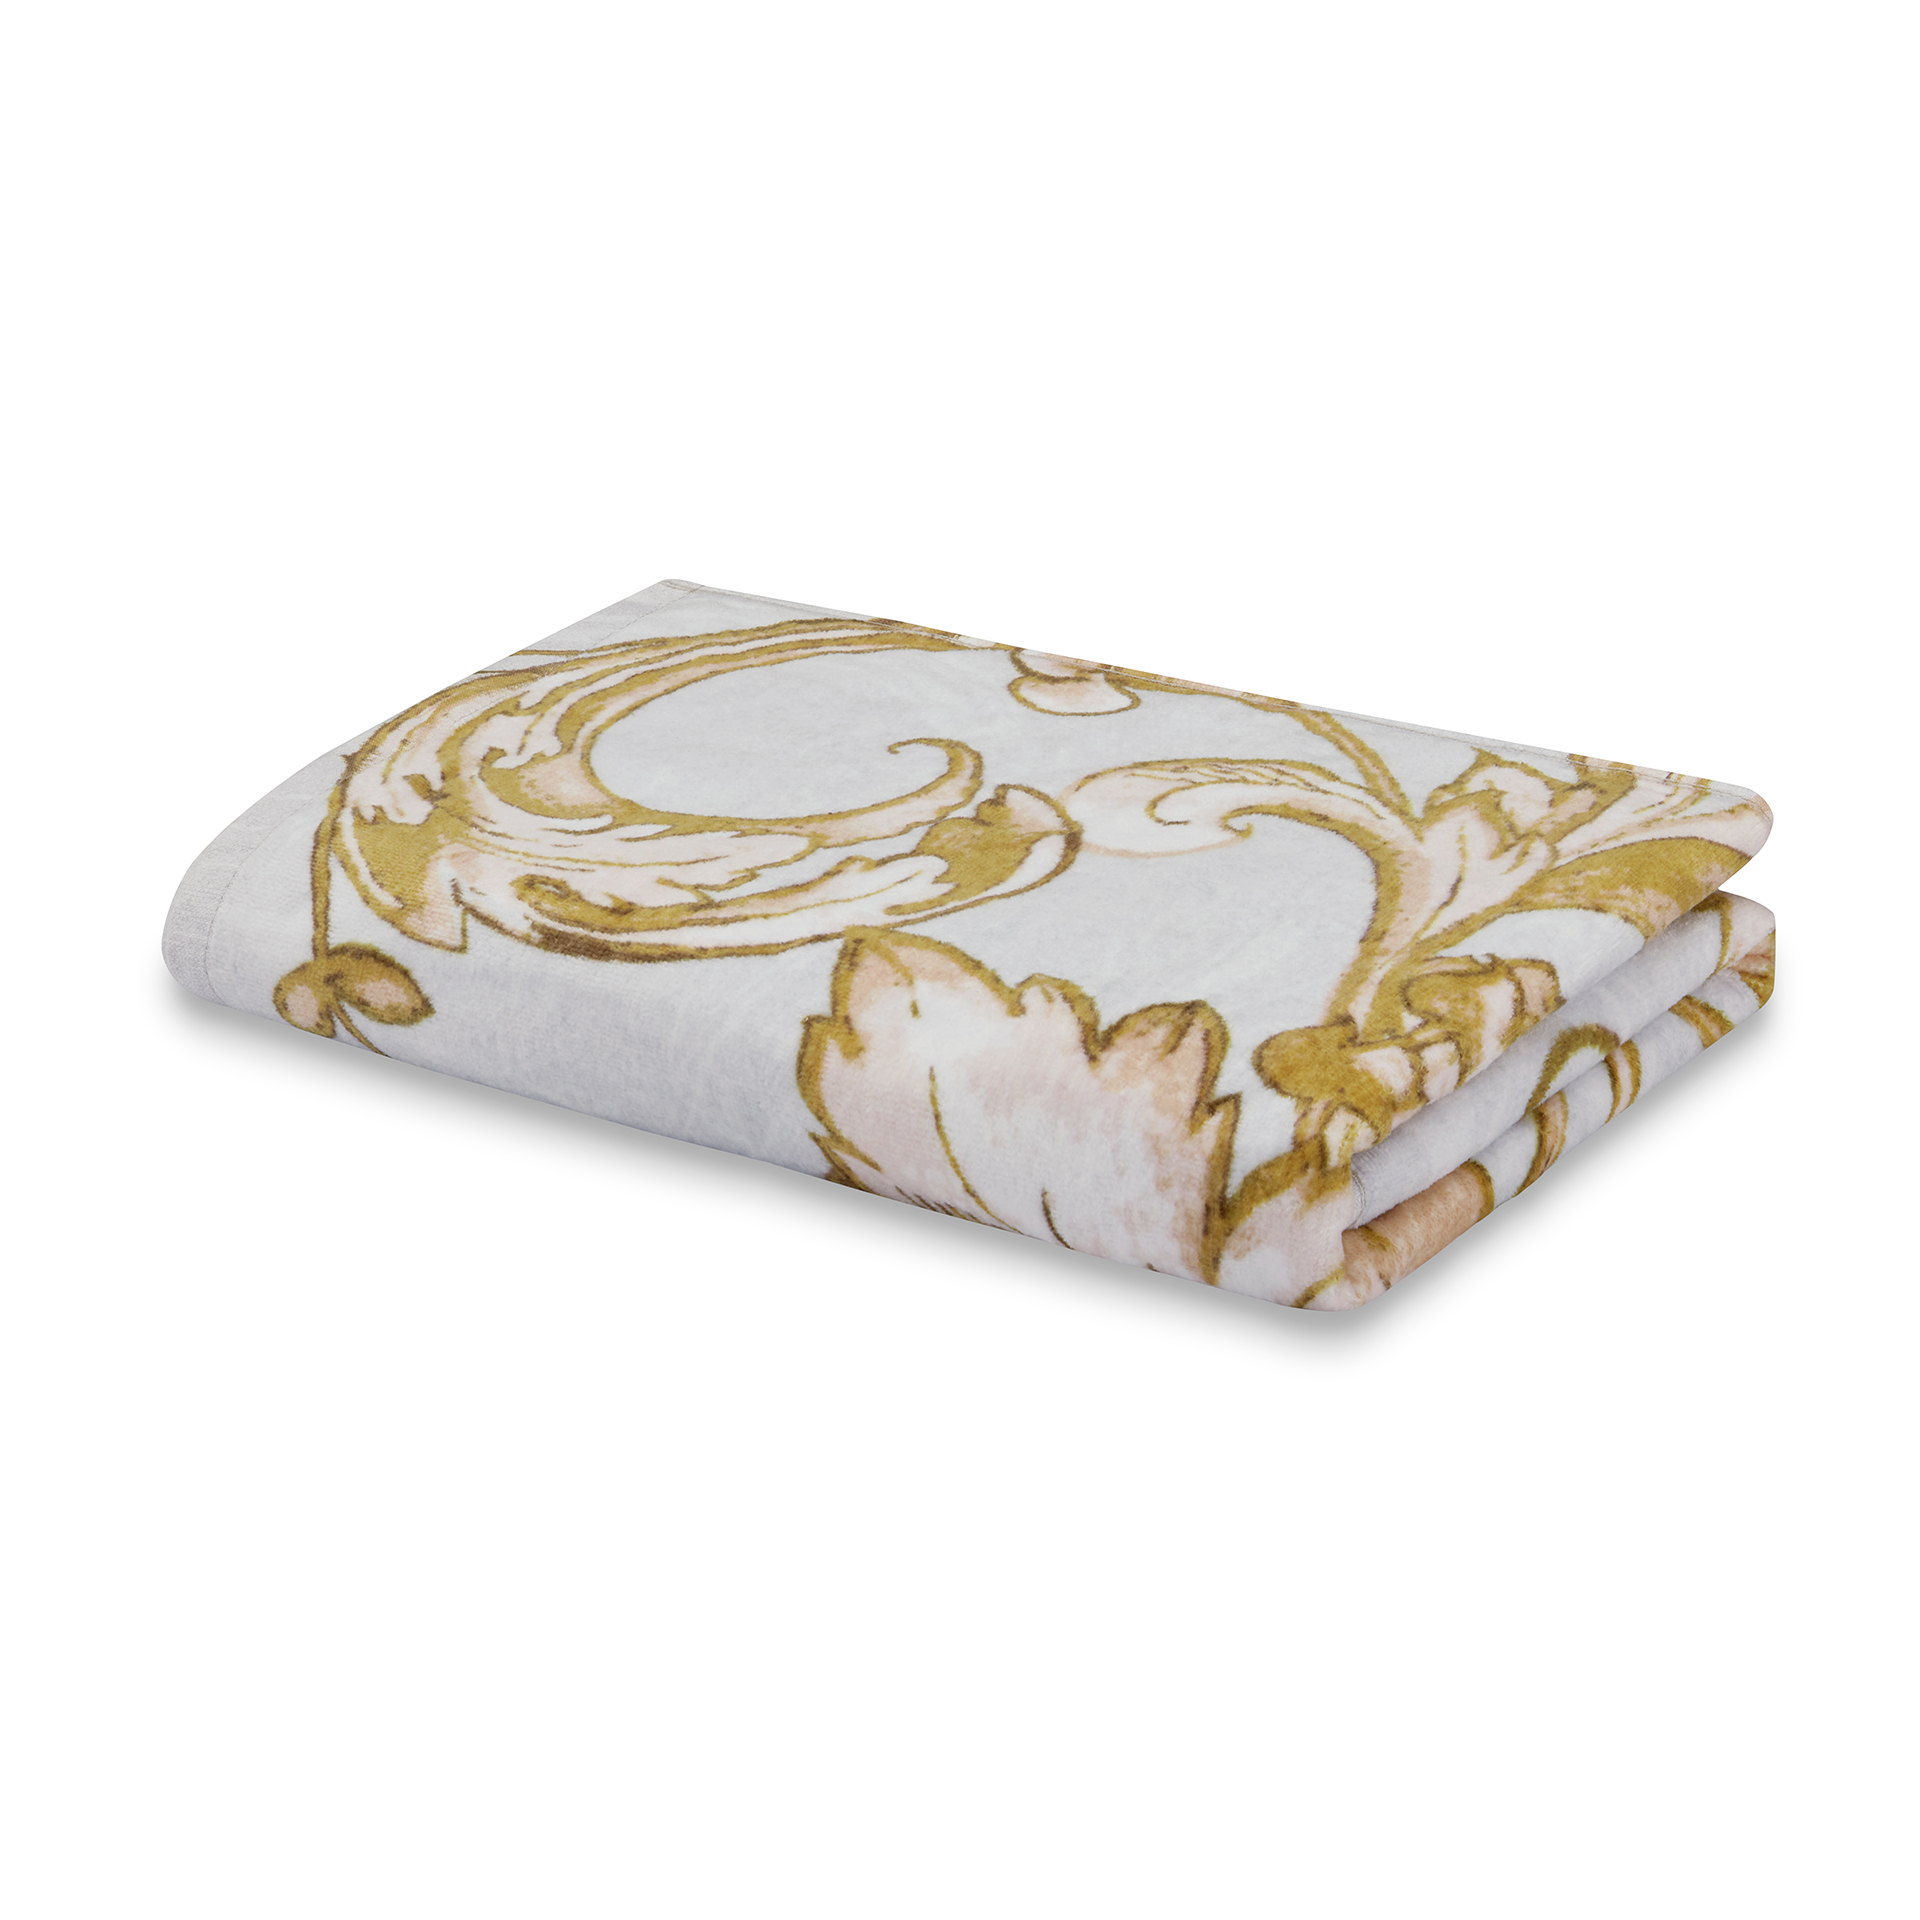 Spaces Atrium Cotton Double Bed Sheets in Gold Colour by Spaces